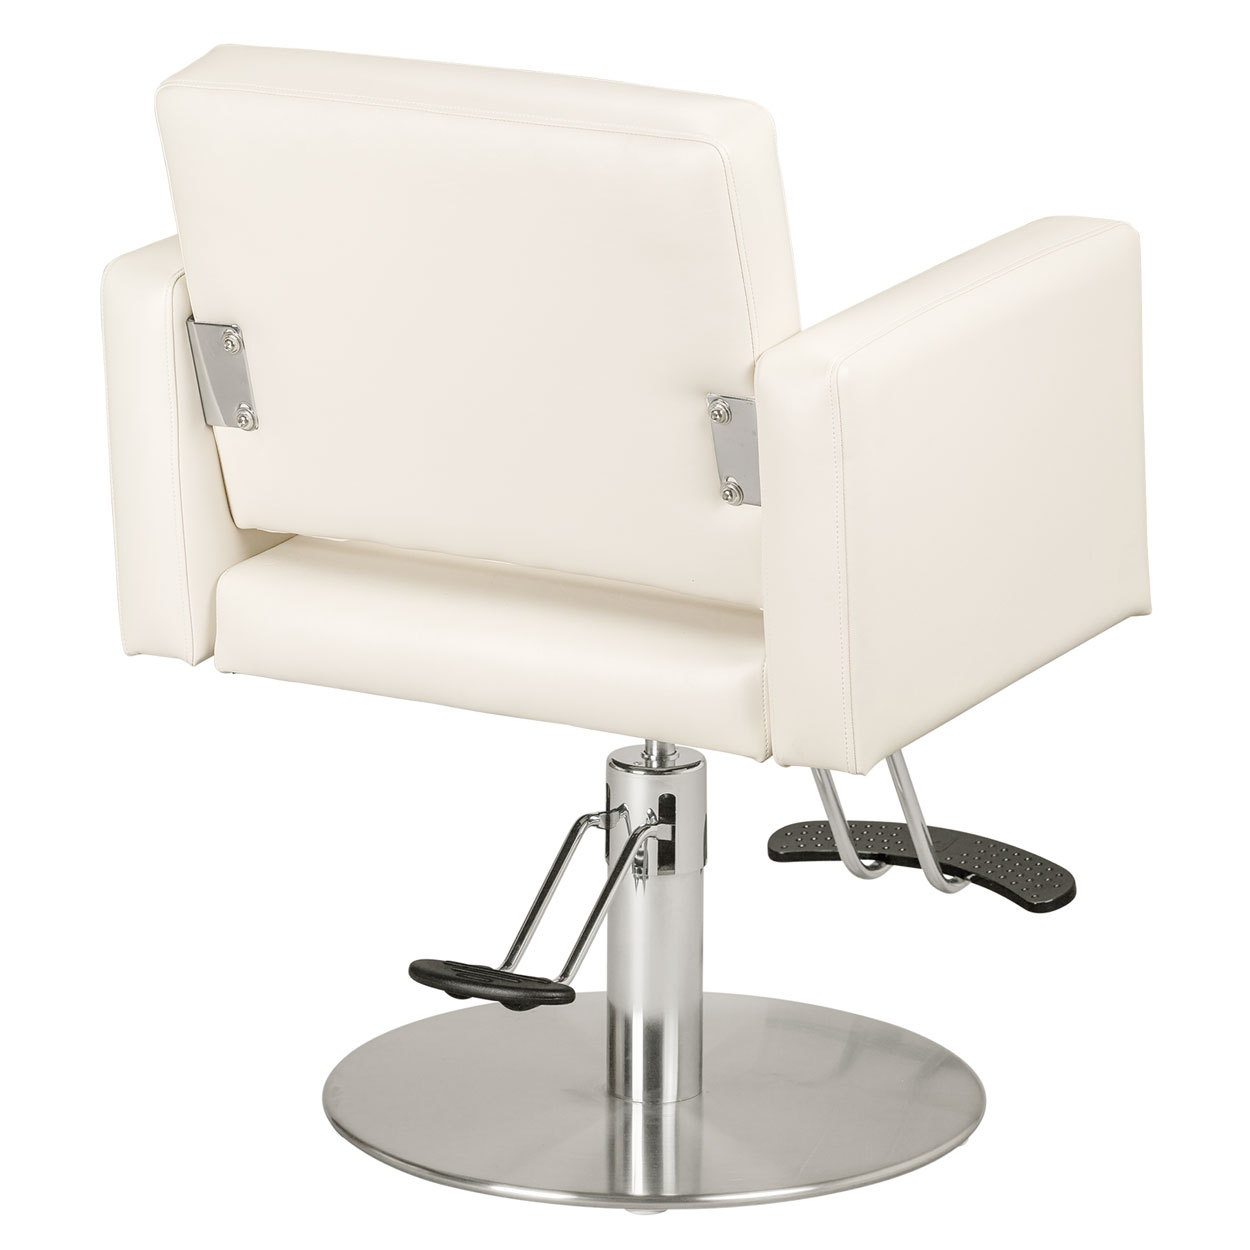 Pibbs 3406 Cosmo Hair Stylist Chair alternative product image 6